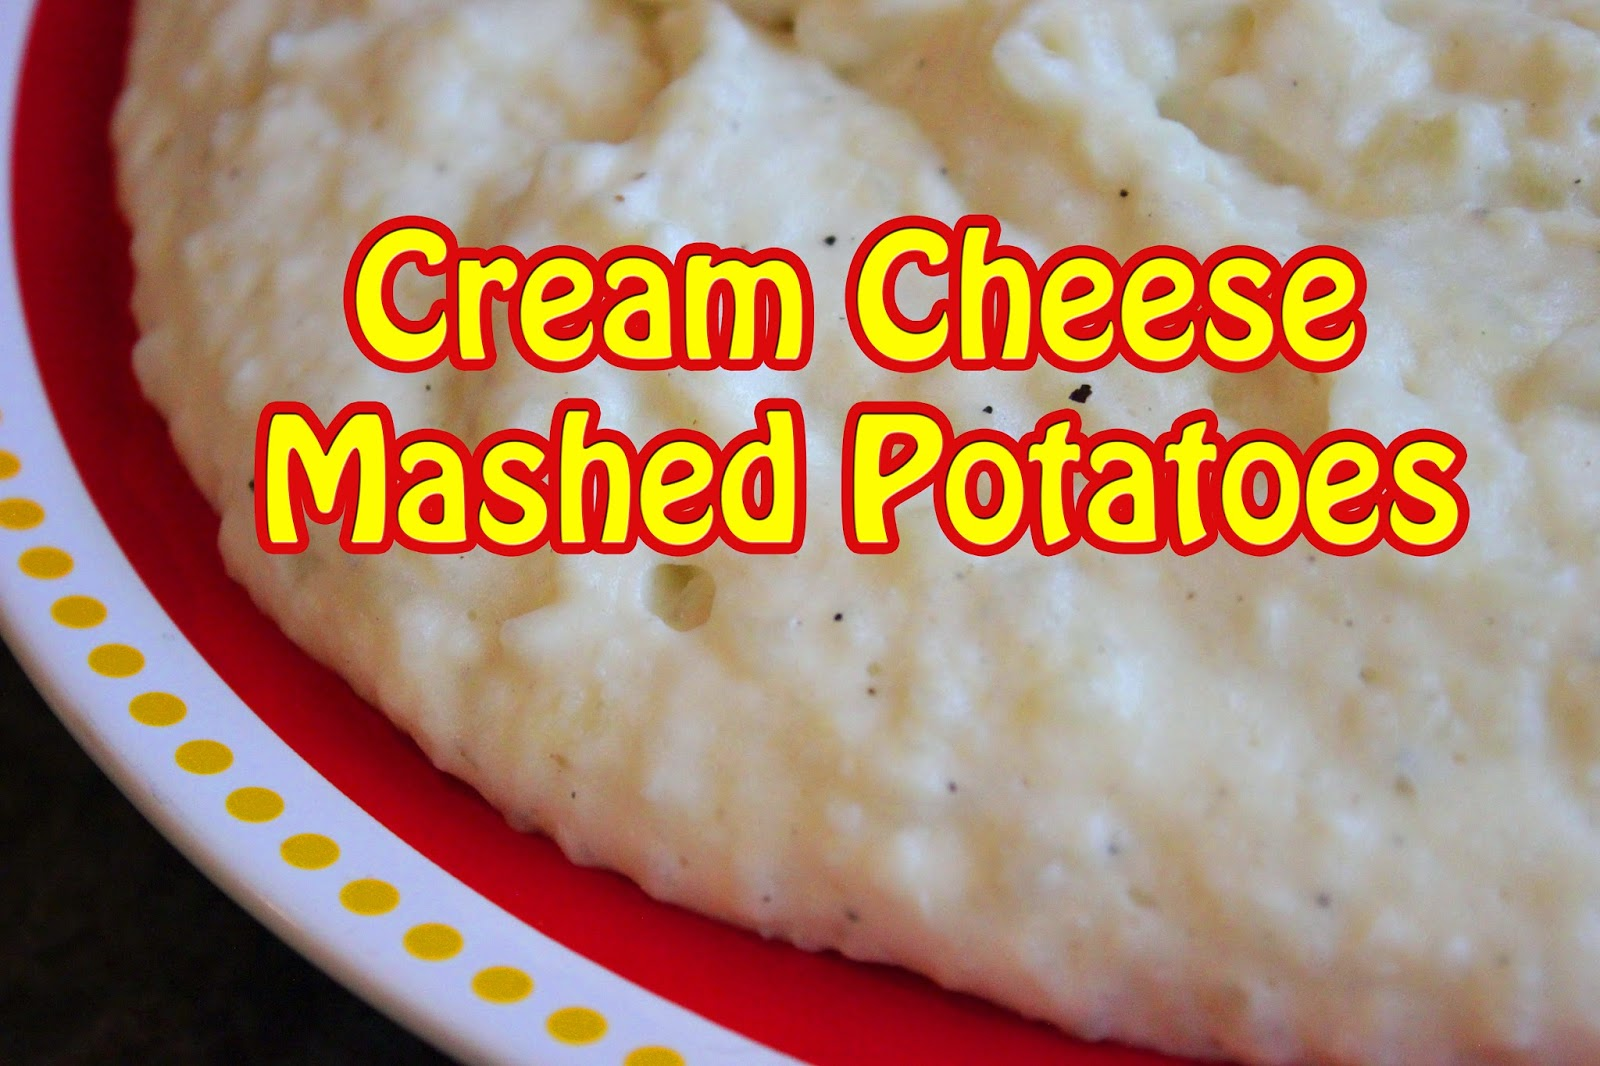 Le Cellier: Cream Cheese Mashed Potatoes Recipe